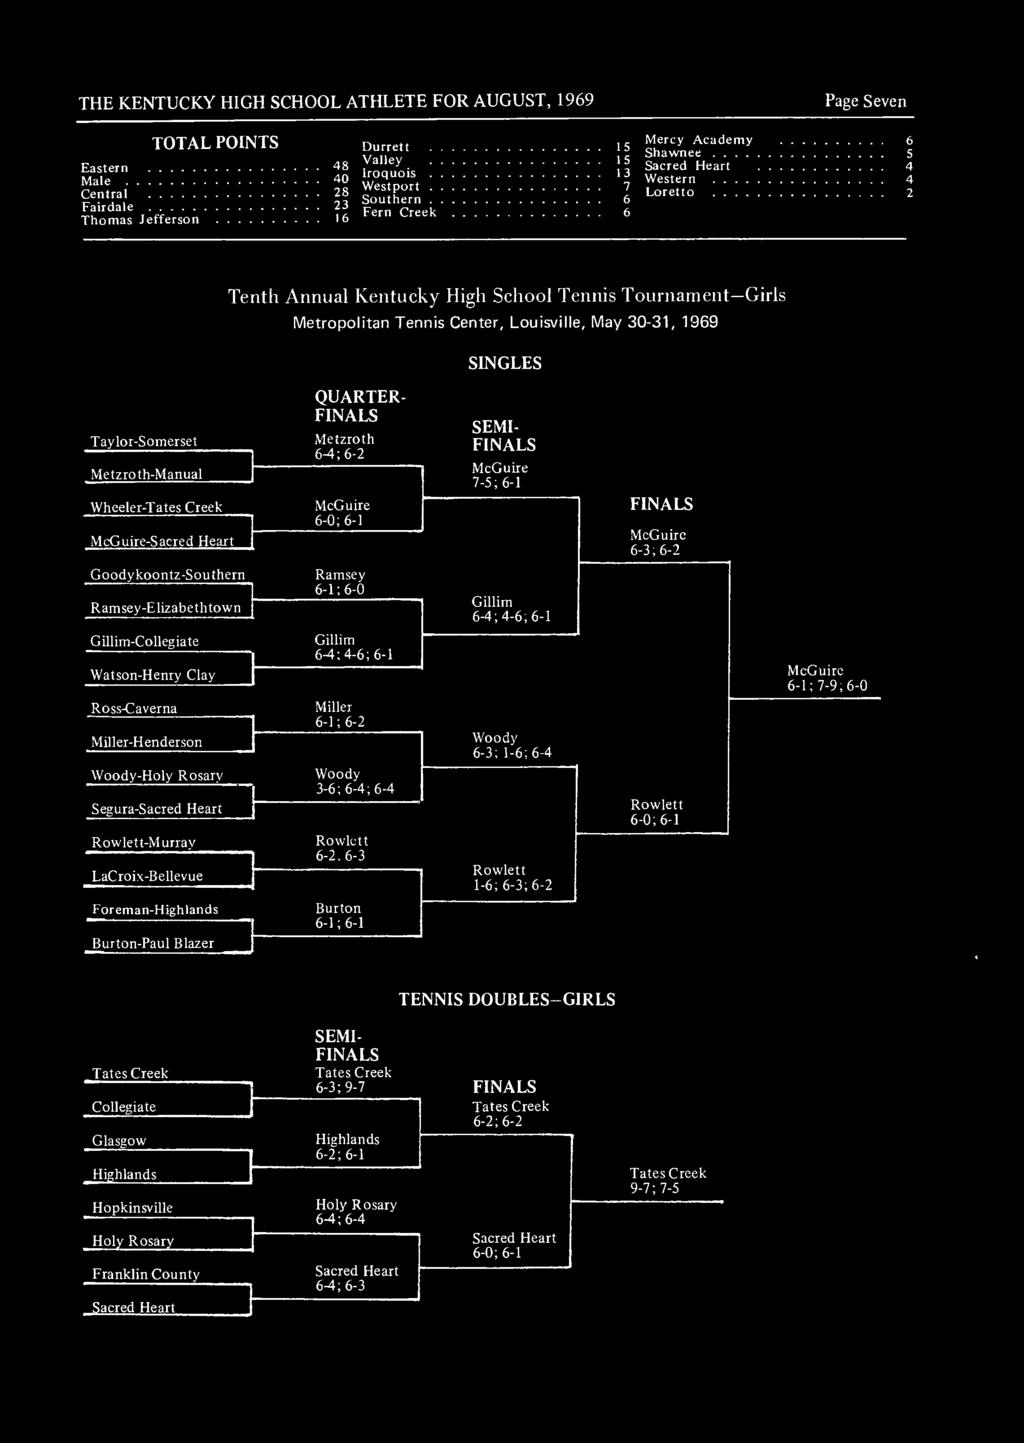 Girls Metropolitan Tennis Center, Louisville, May 30-31, 1969 SINGLES Taylor-Somerset Metzroth-Manual Wheeler-Tates Creek McGuire-Sacred Heart QUARTER- FINALS Metzroth 6-4; 6-2 McGuire 6-0; 6-1 SEMI-